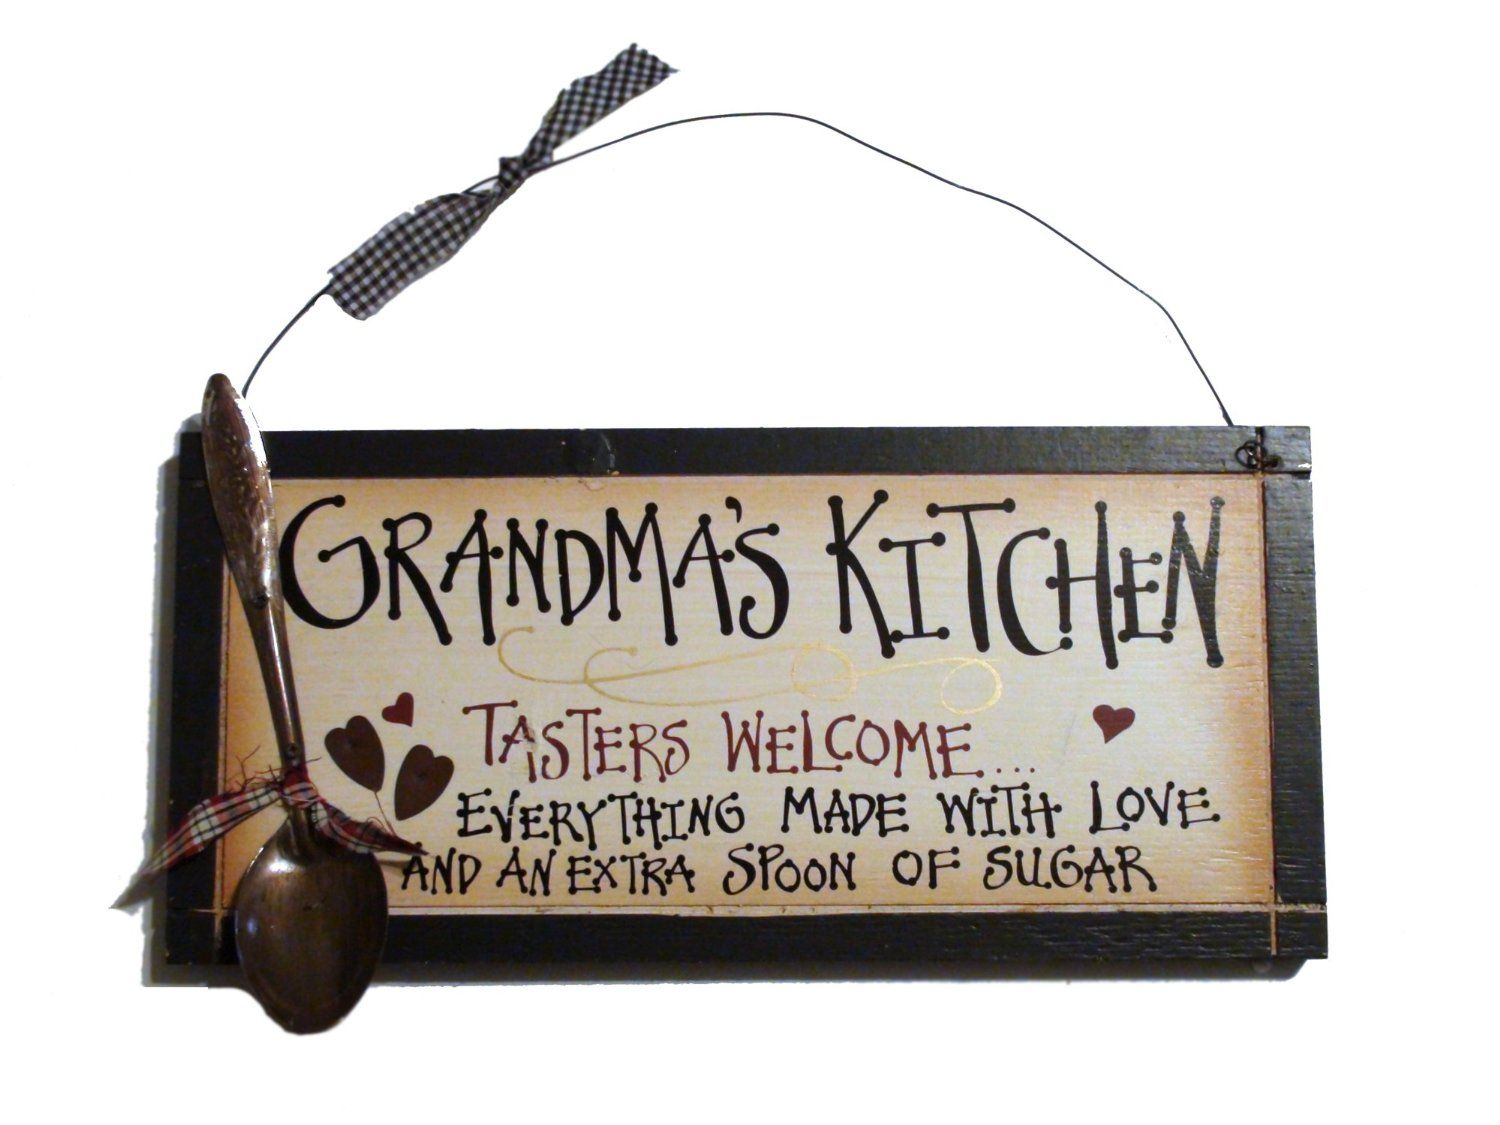 Küchenschilder Grandma's Grandma Nana Kitchen – Tasters Welcome With ...